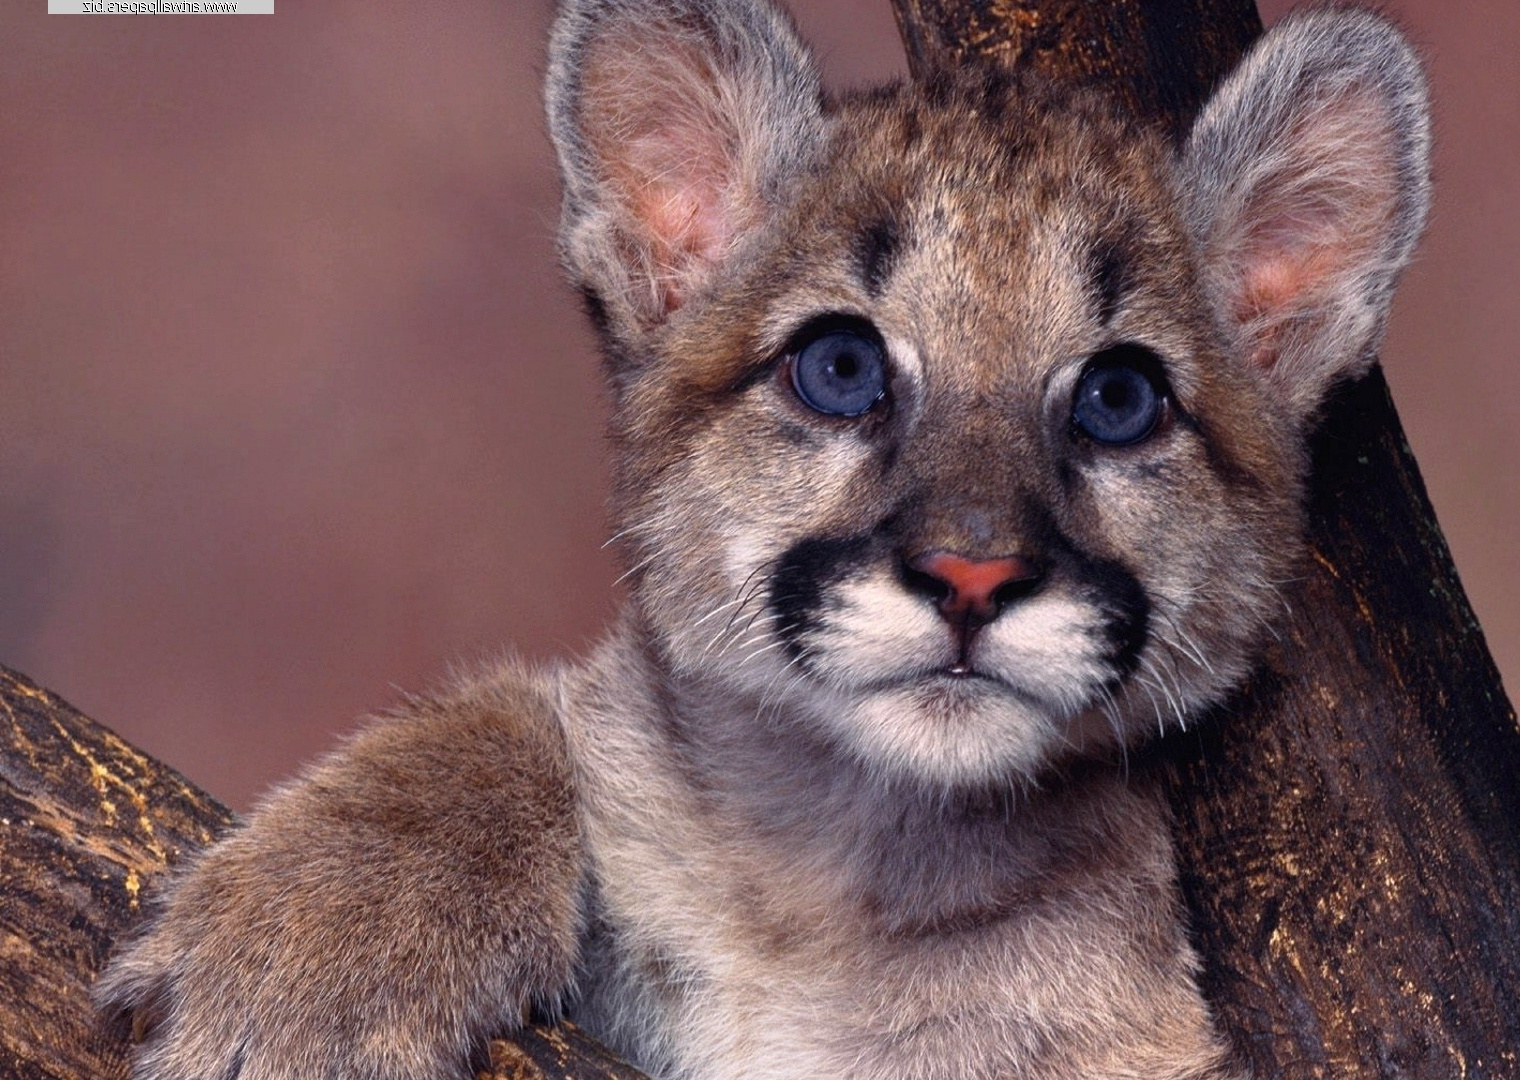 Wild Animals Wallpapers, Wild Animals Desktop Backgrounds, Computer ...